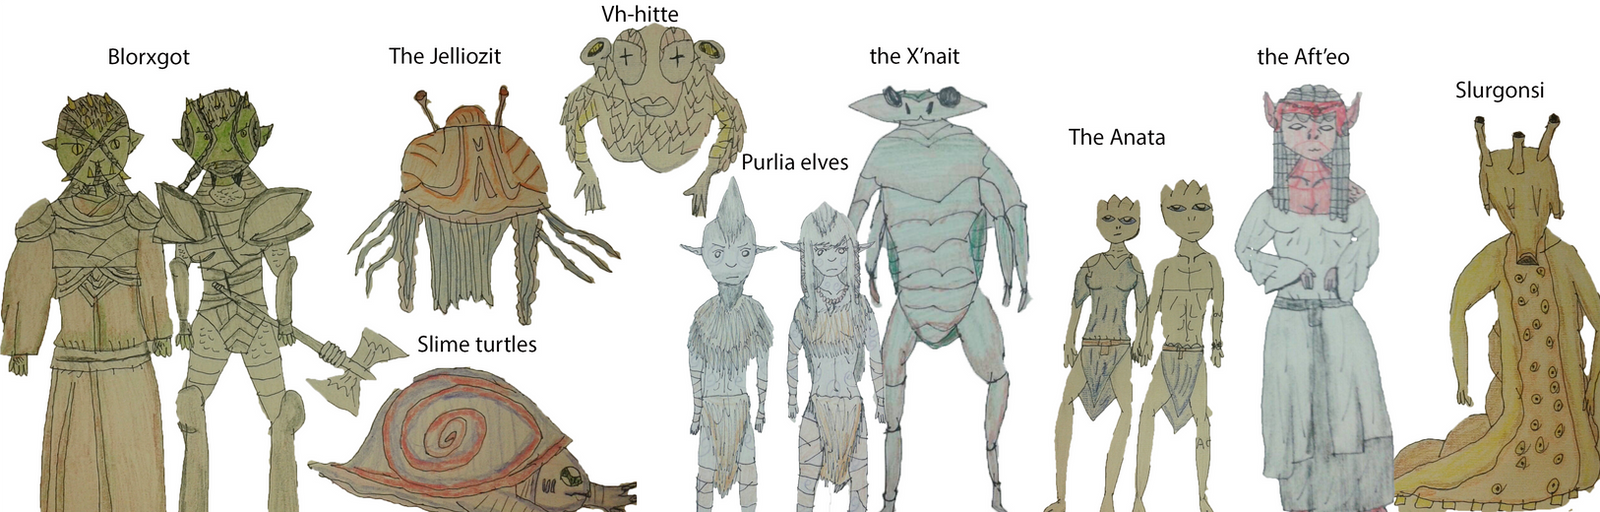 descriptive essay of alien visiting earth In the alien from earth, i believe that a completely new type of species was discovered that is at most a distant cousin to humans because they resemble humans in the way they look and the way they move around, use tools, hunt, etc,  ancient aliens visiting earth essay where do we come from where do we come from and why are we here questions which have.